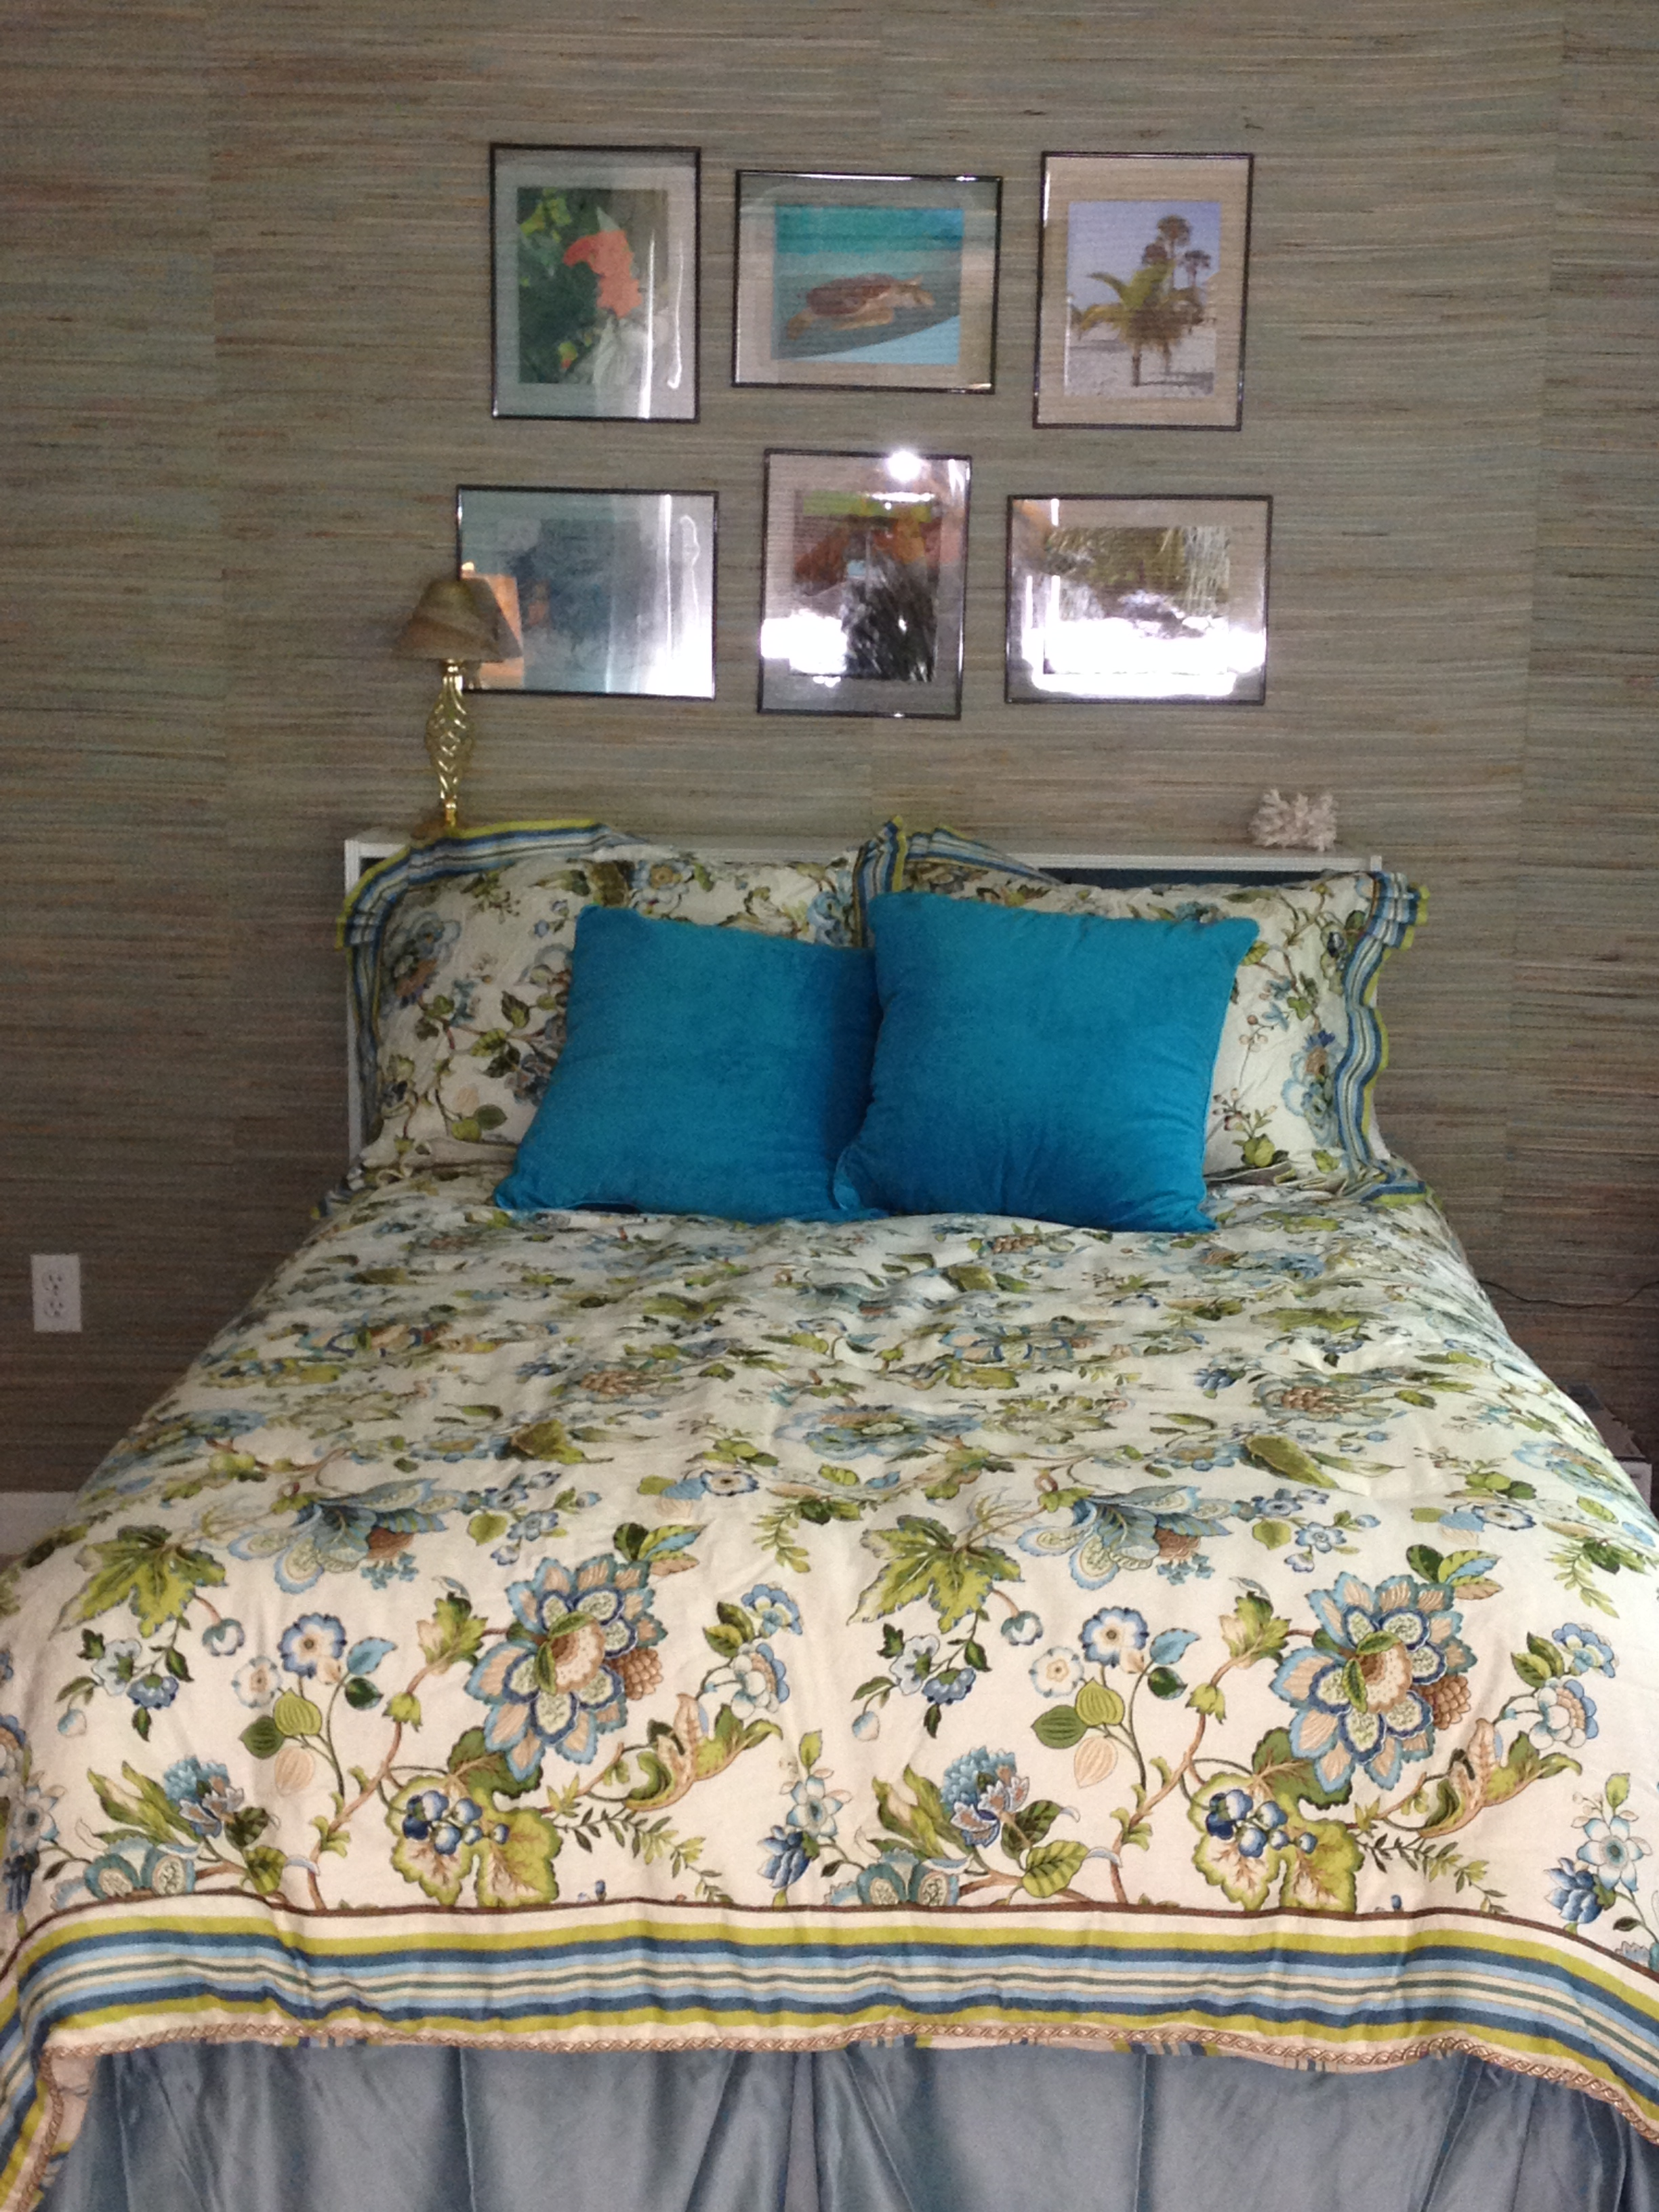 photo of bed against grasscloth wallpaper wall with frameless floating photos